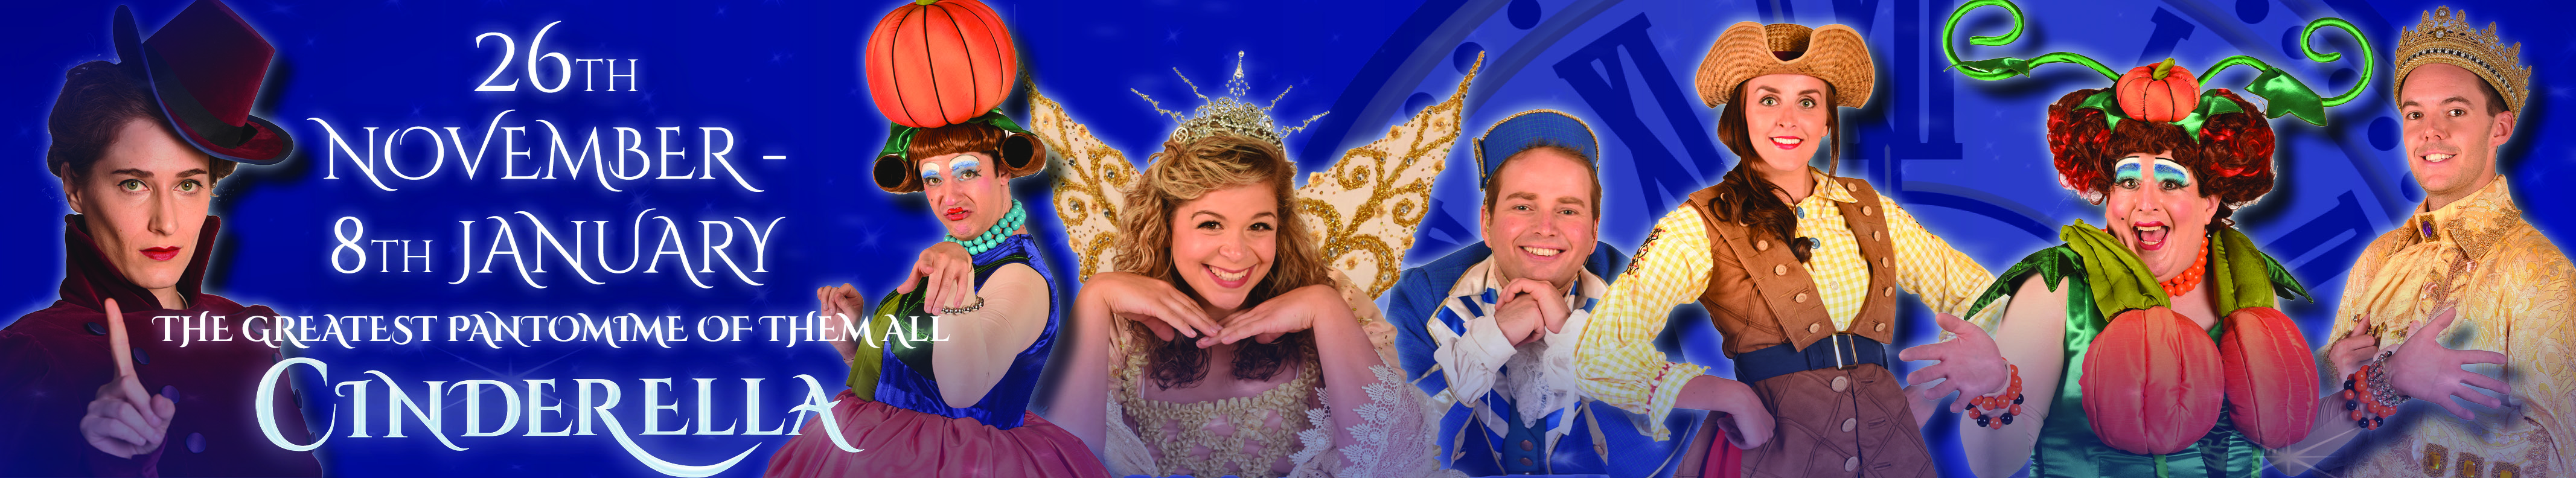 Cinderella 26th November 2016 to 8th January 2017